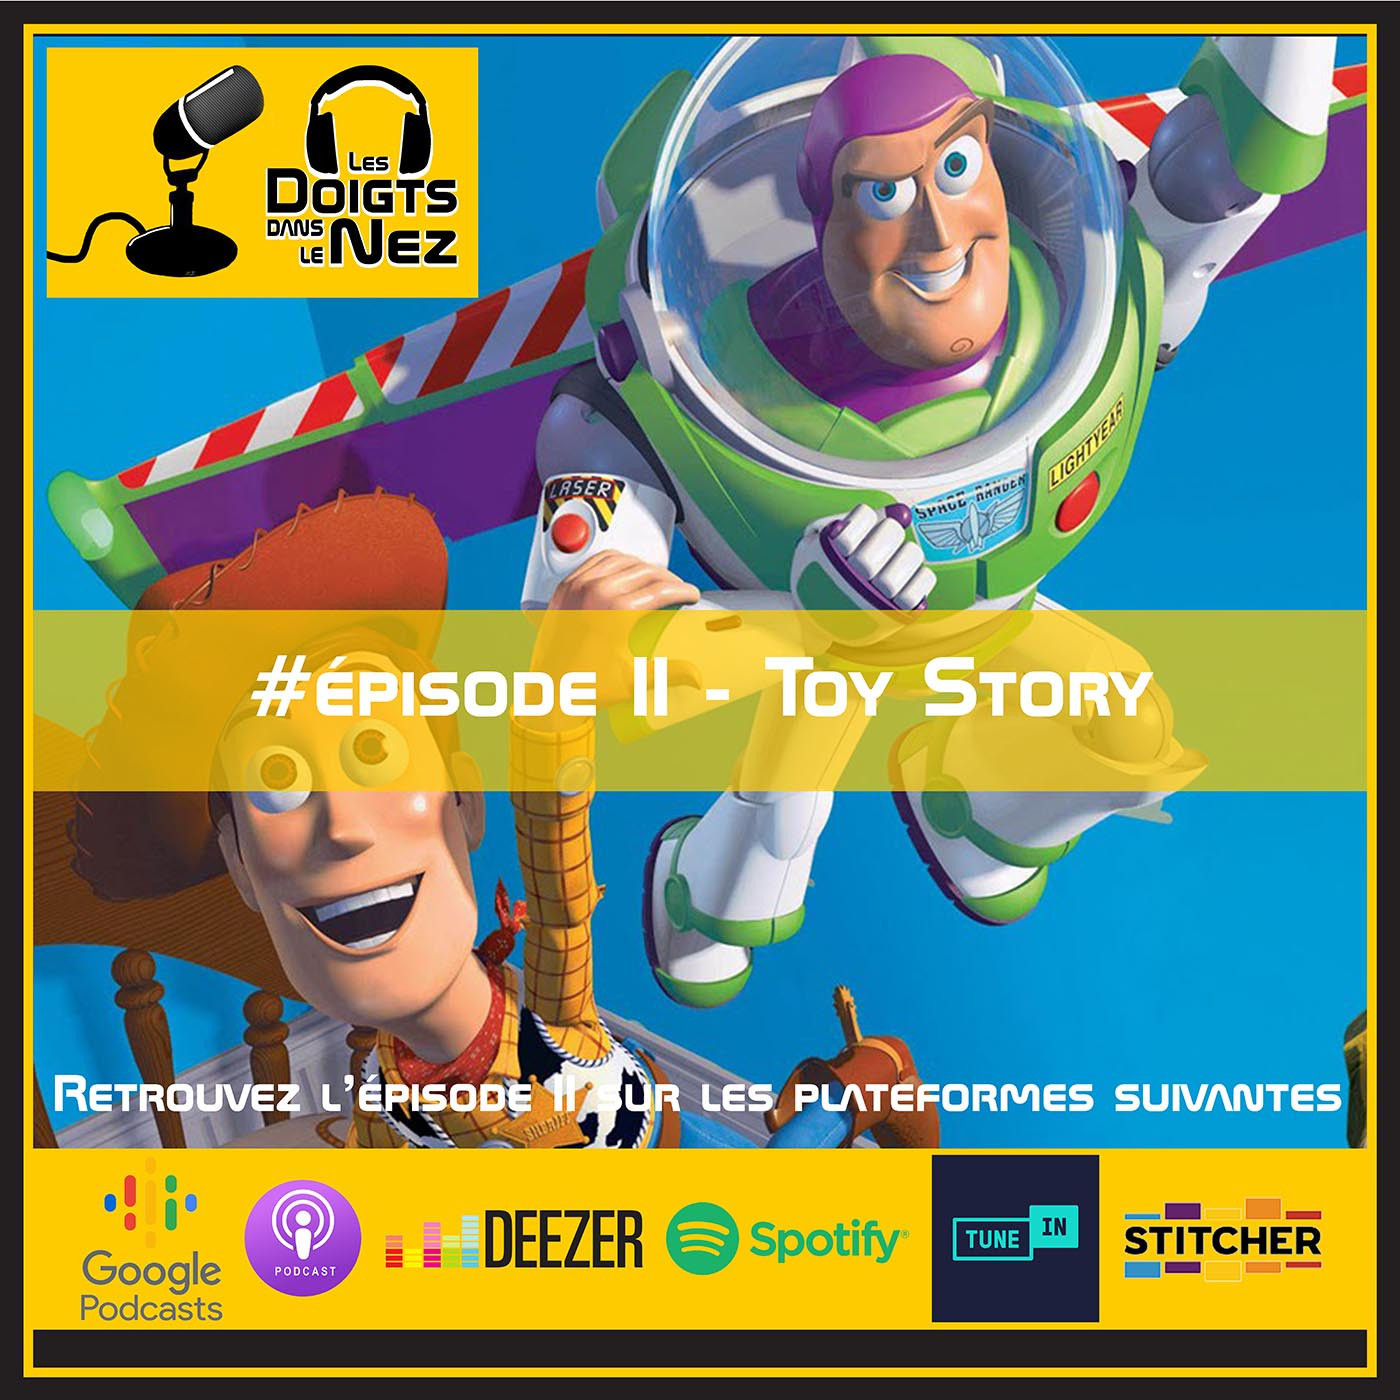 #Episode II - Toy Story